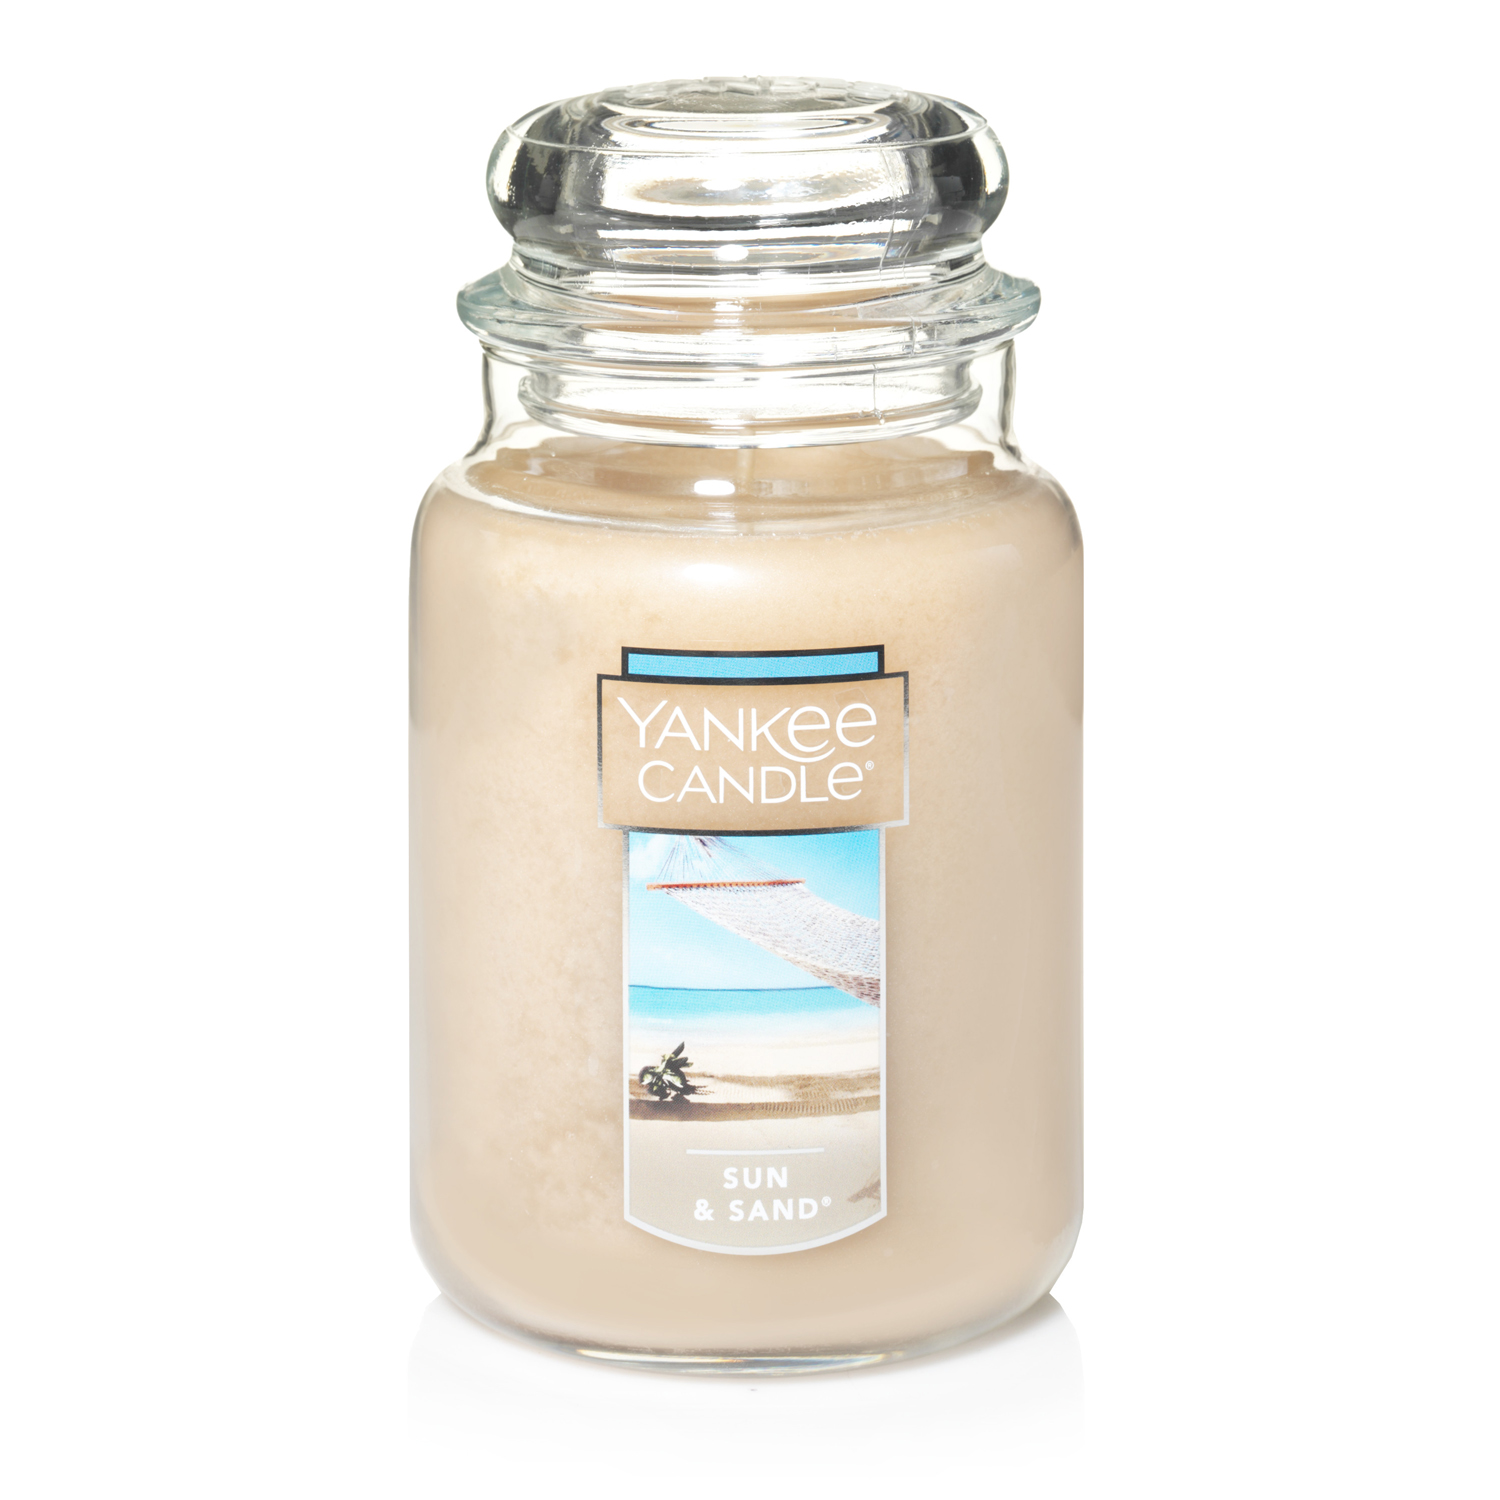 Yankee Candle Large 2-Wick Tumbler Candle, Sun & Sand by Newell Brands